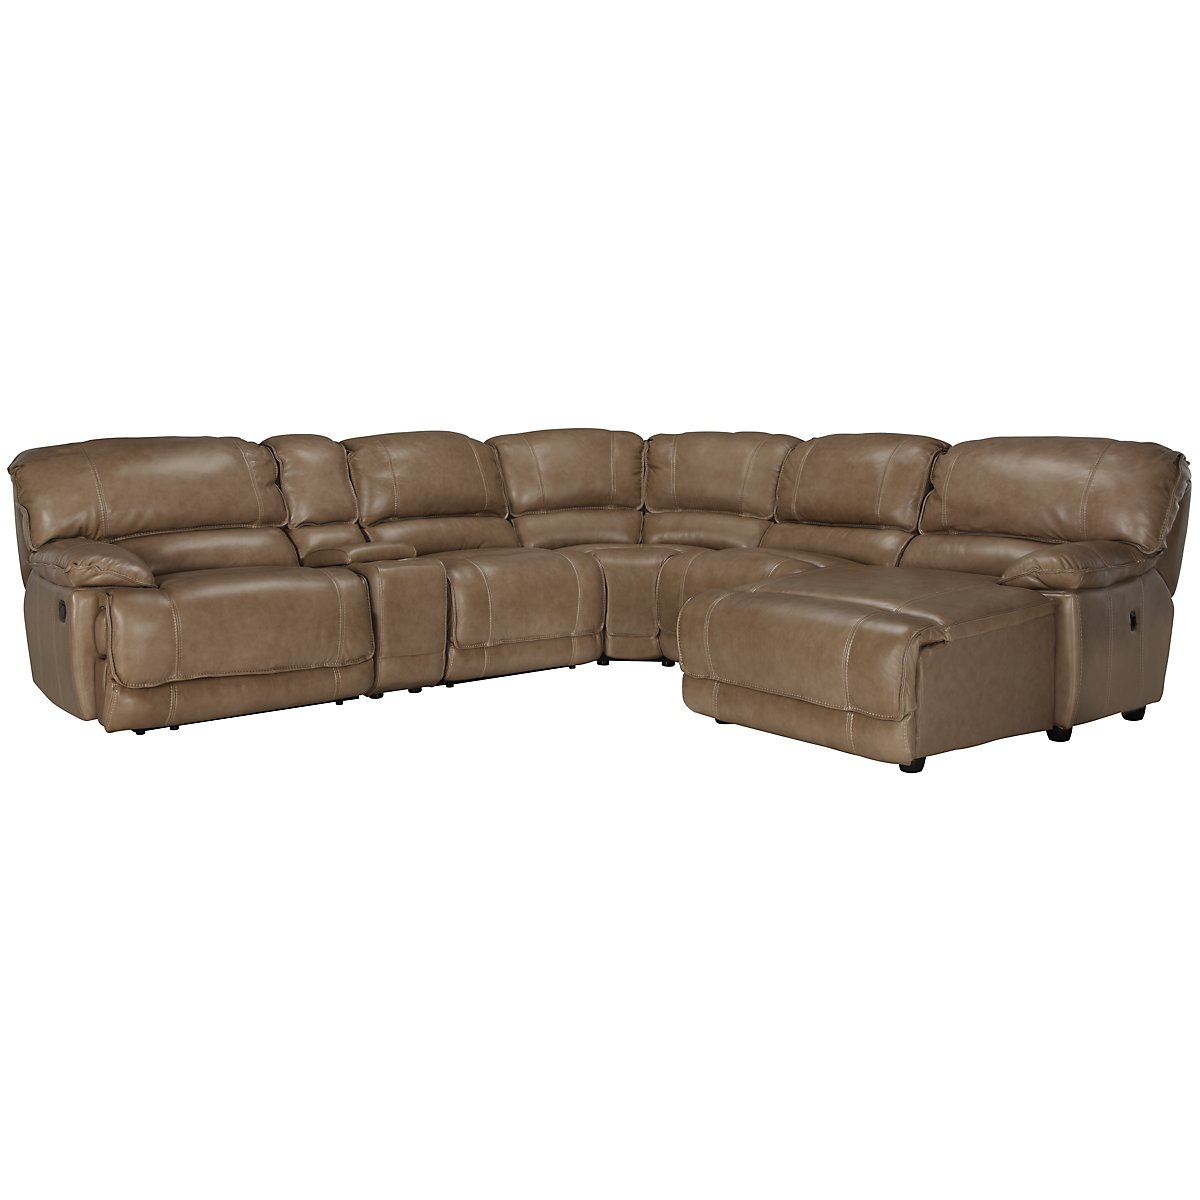 benson dk taupe lthr vinyl r chaise mnl rec sec. Black Bedroom Furniture Sets. Home Design Ideas